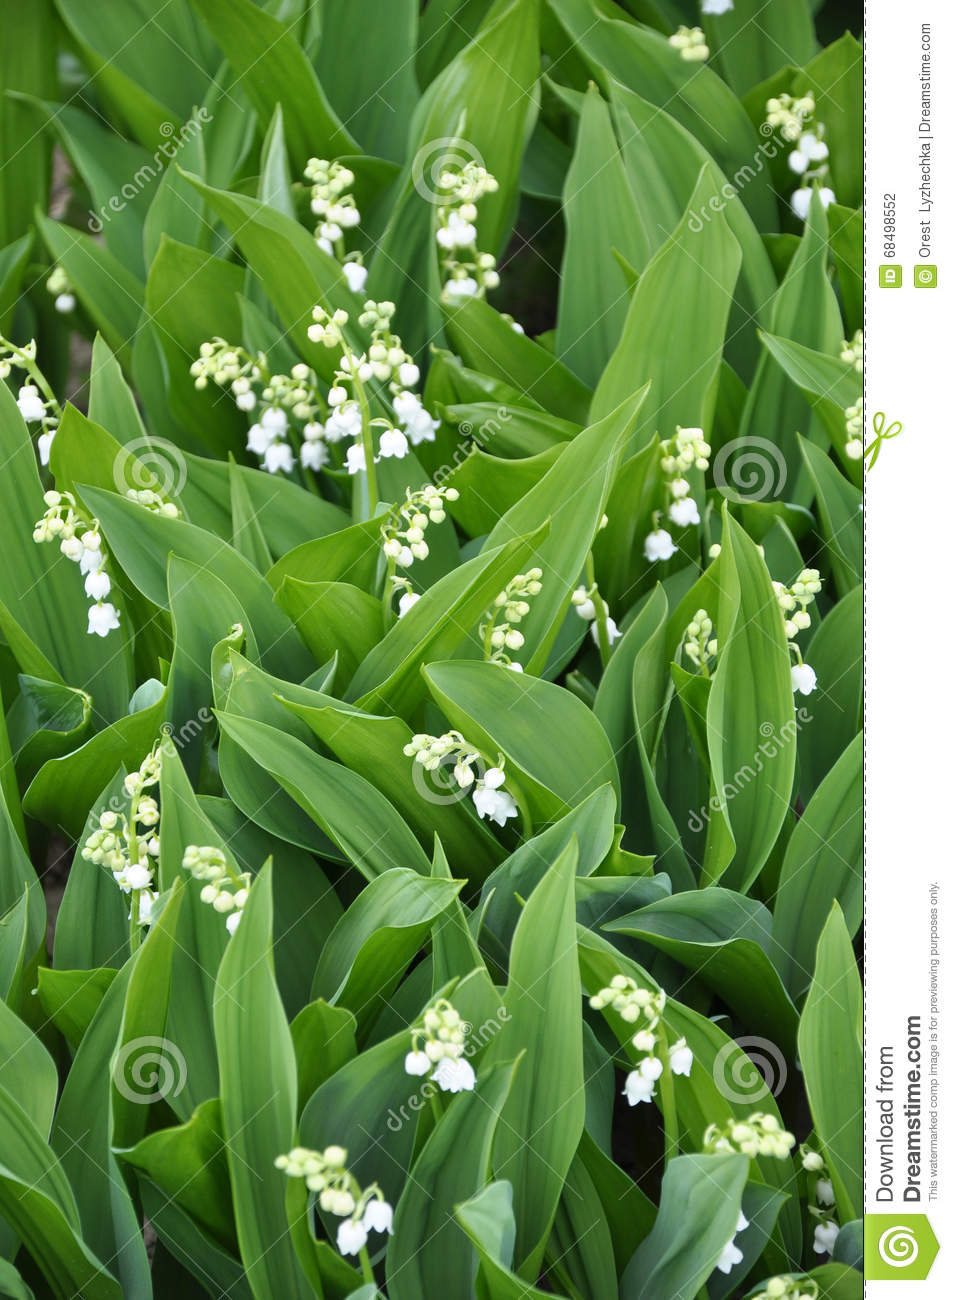 Lily Of The Valley Or May Day2 Stock Photo Image Of Flower Bells